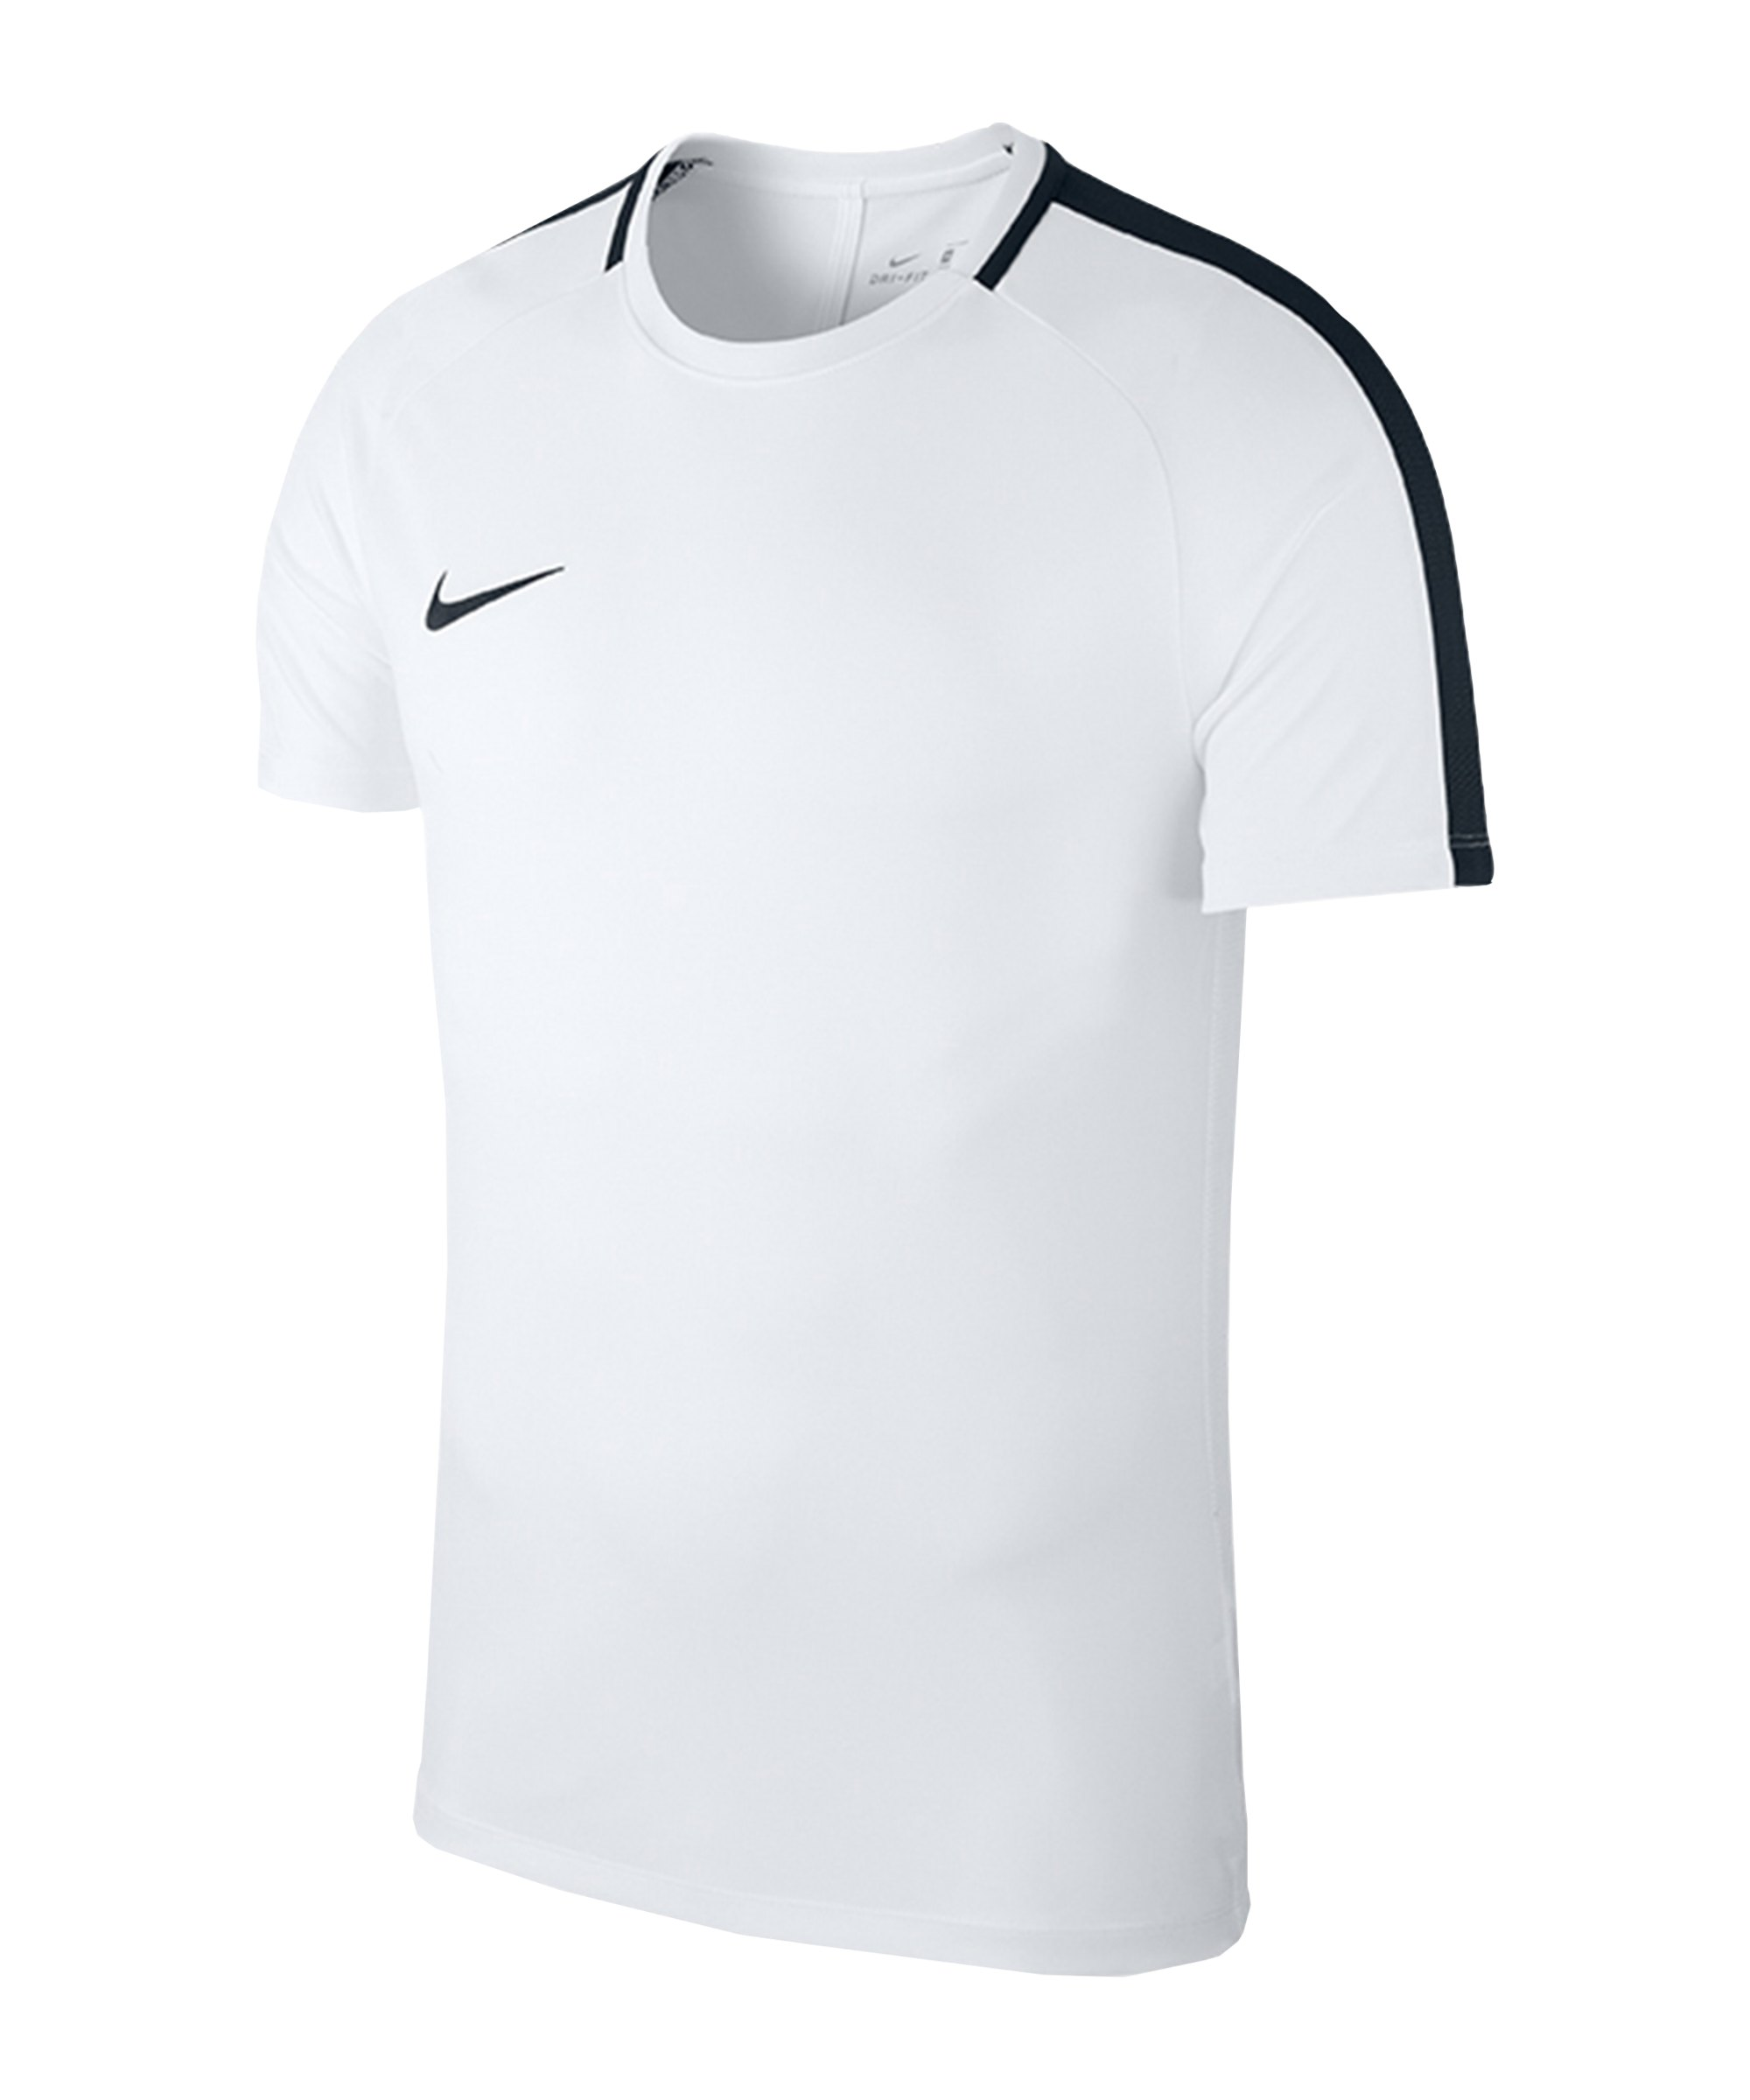 T 18 Football Nike Academy F100 Hose Shirt Weiss Top O5OfInB